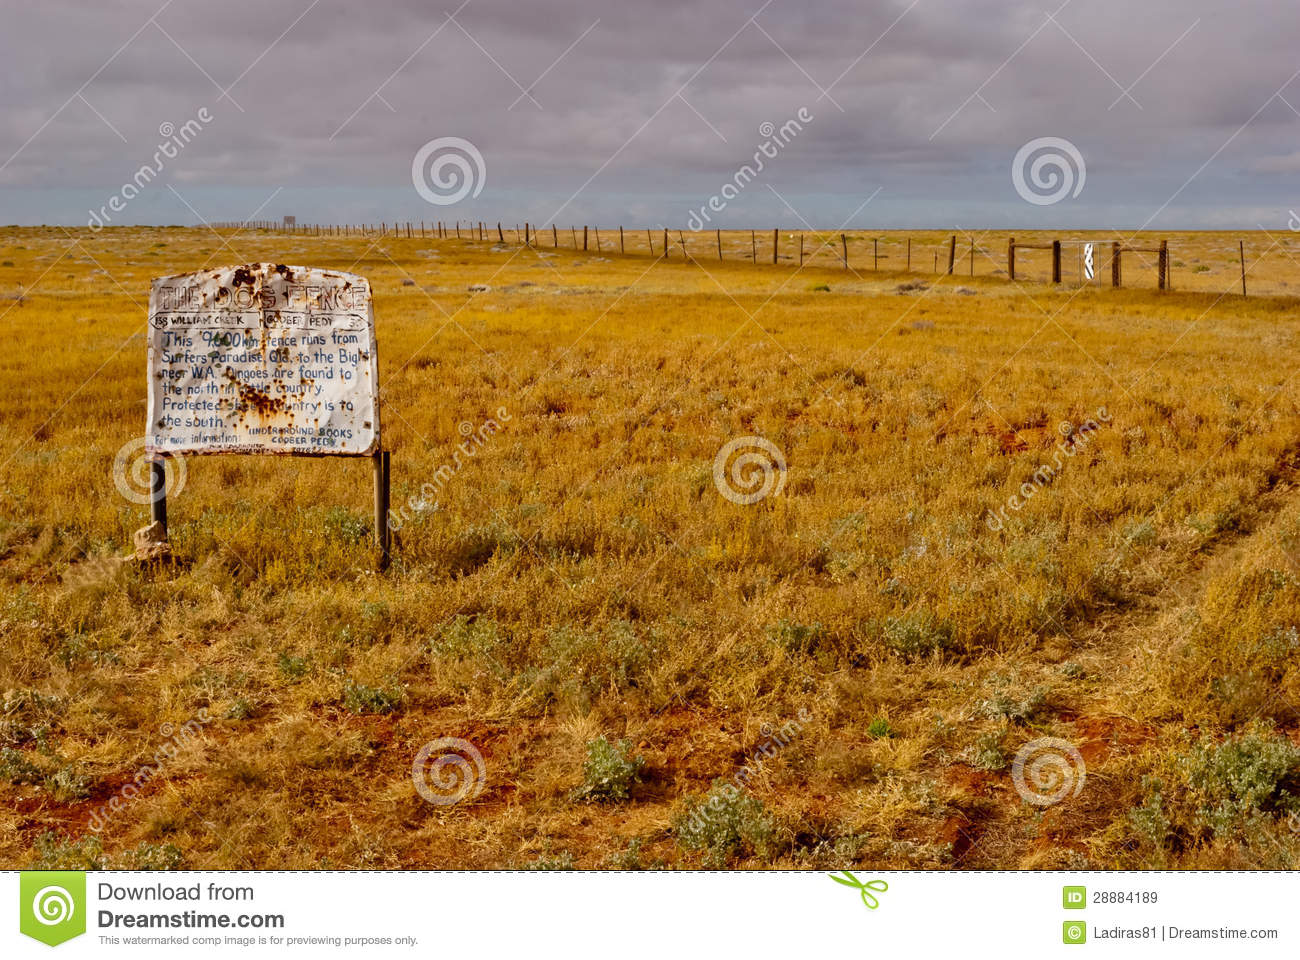 Download The Dog Fence, South Australia Stock Image - Image of fence, northern: 28884189